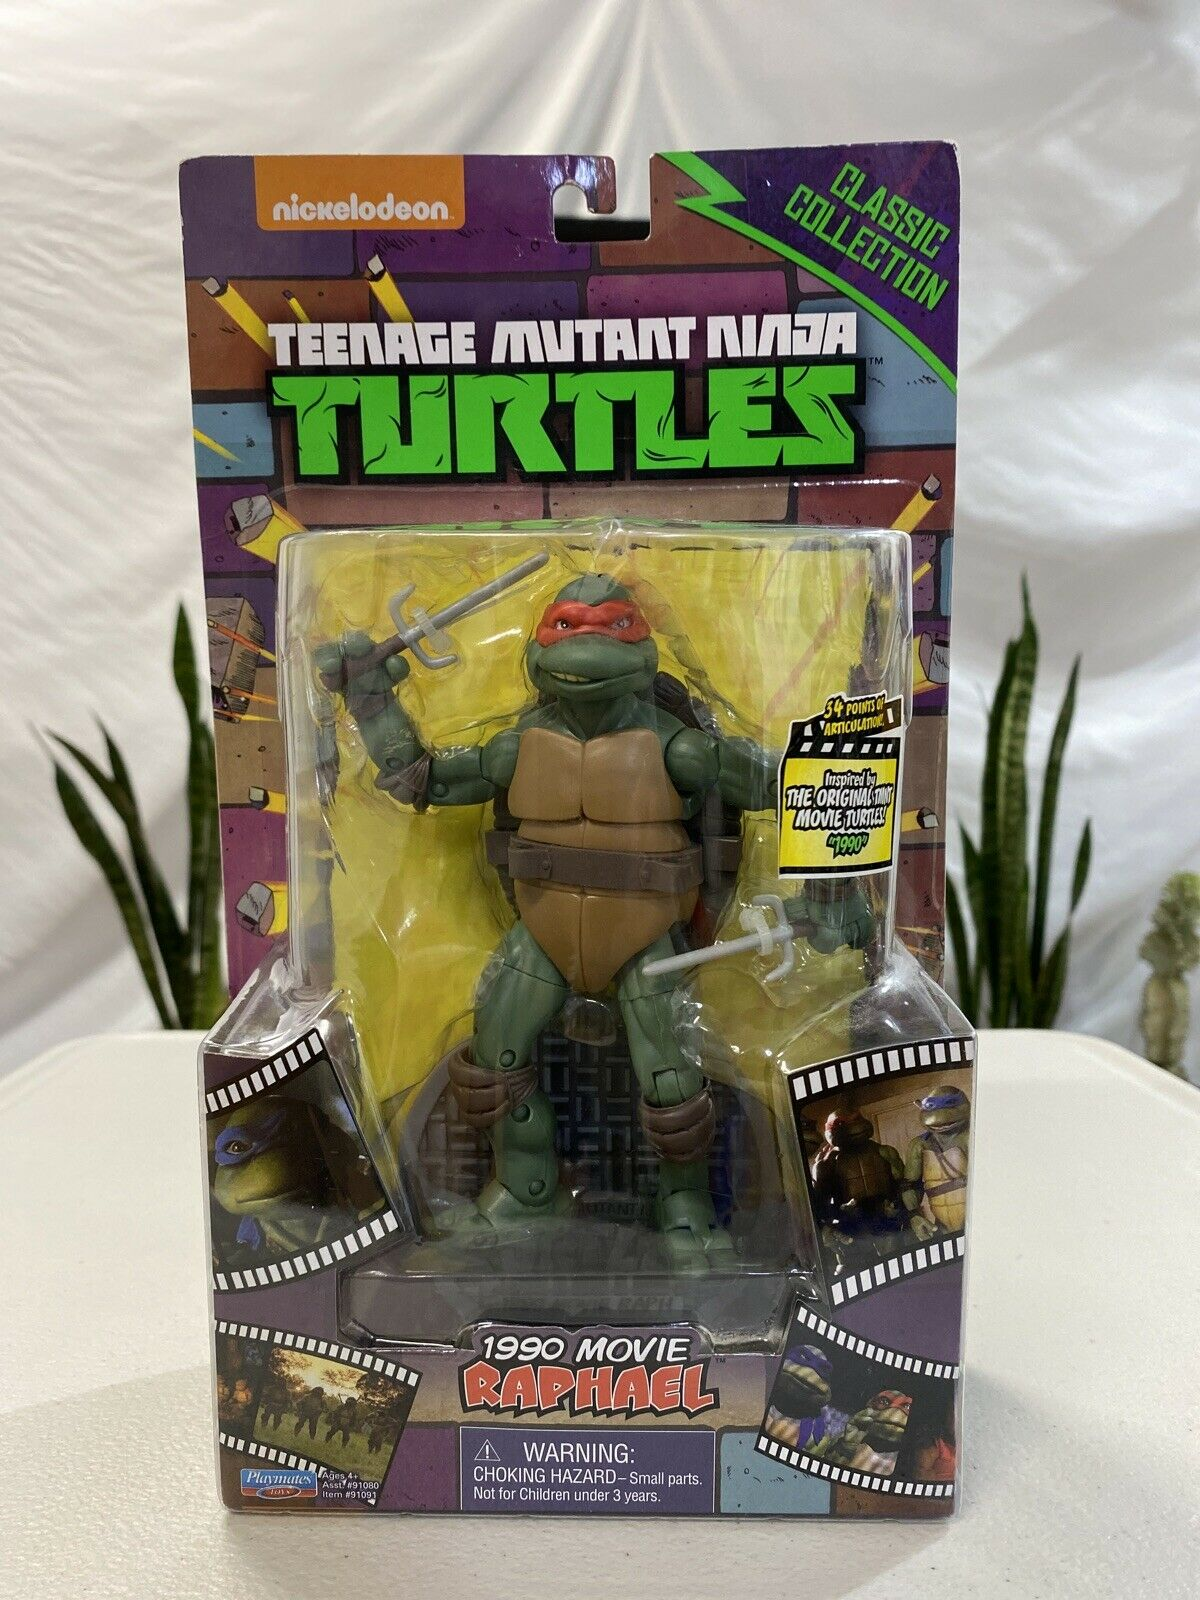 7/'/' inch Action Figure TMNT Teenage Mutant Ninja Turtles 1990 Movie Collection